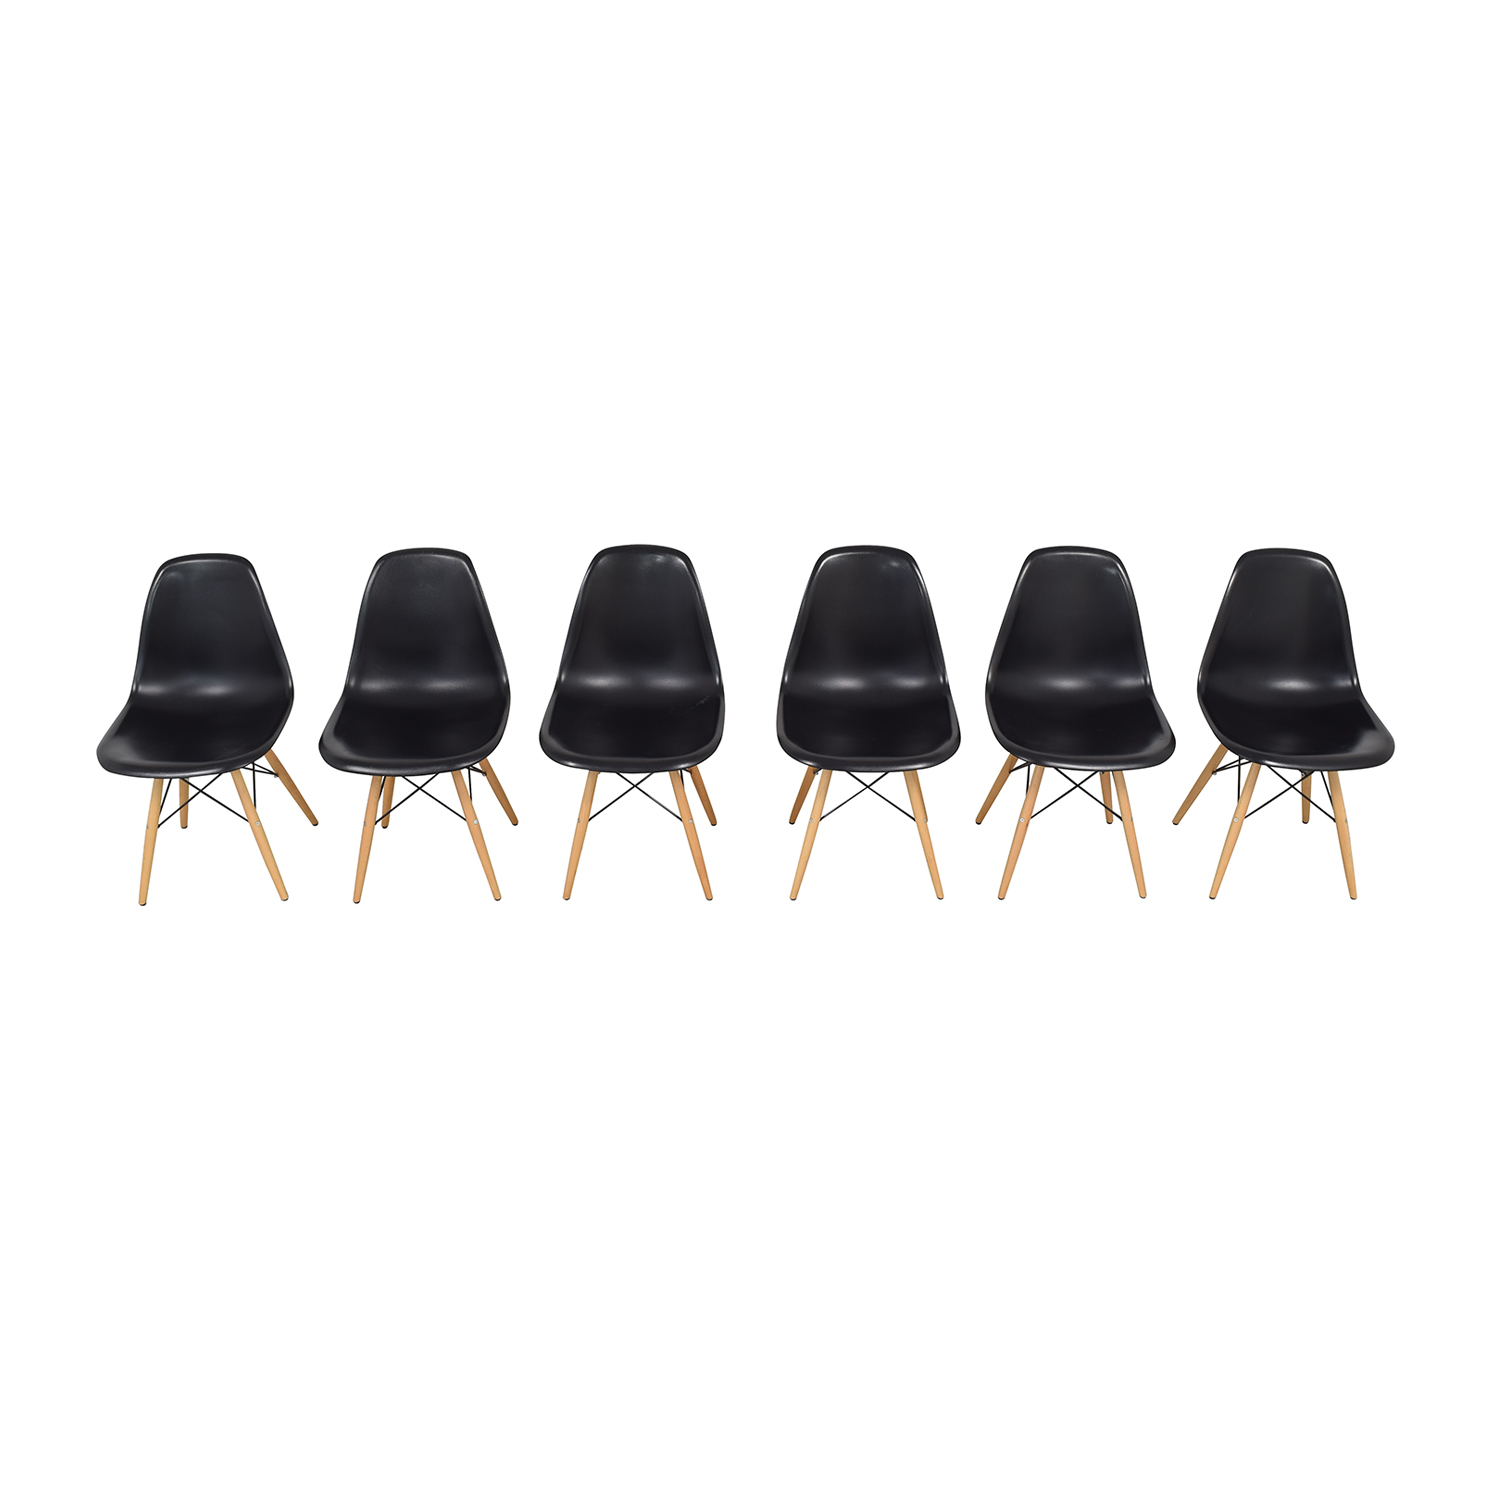 Black Eames-Style Molded Plastic Dining Chairs with Wooden Legs / Chairs